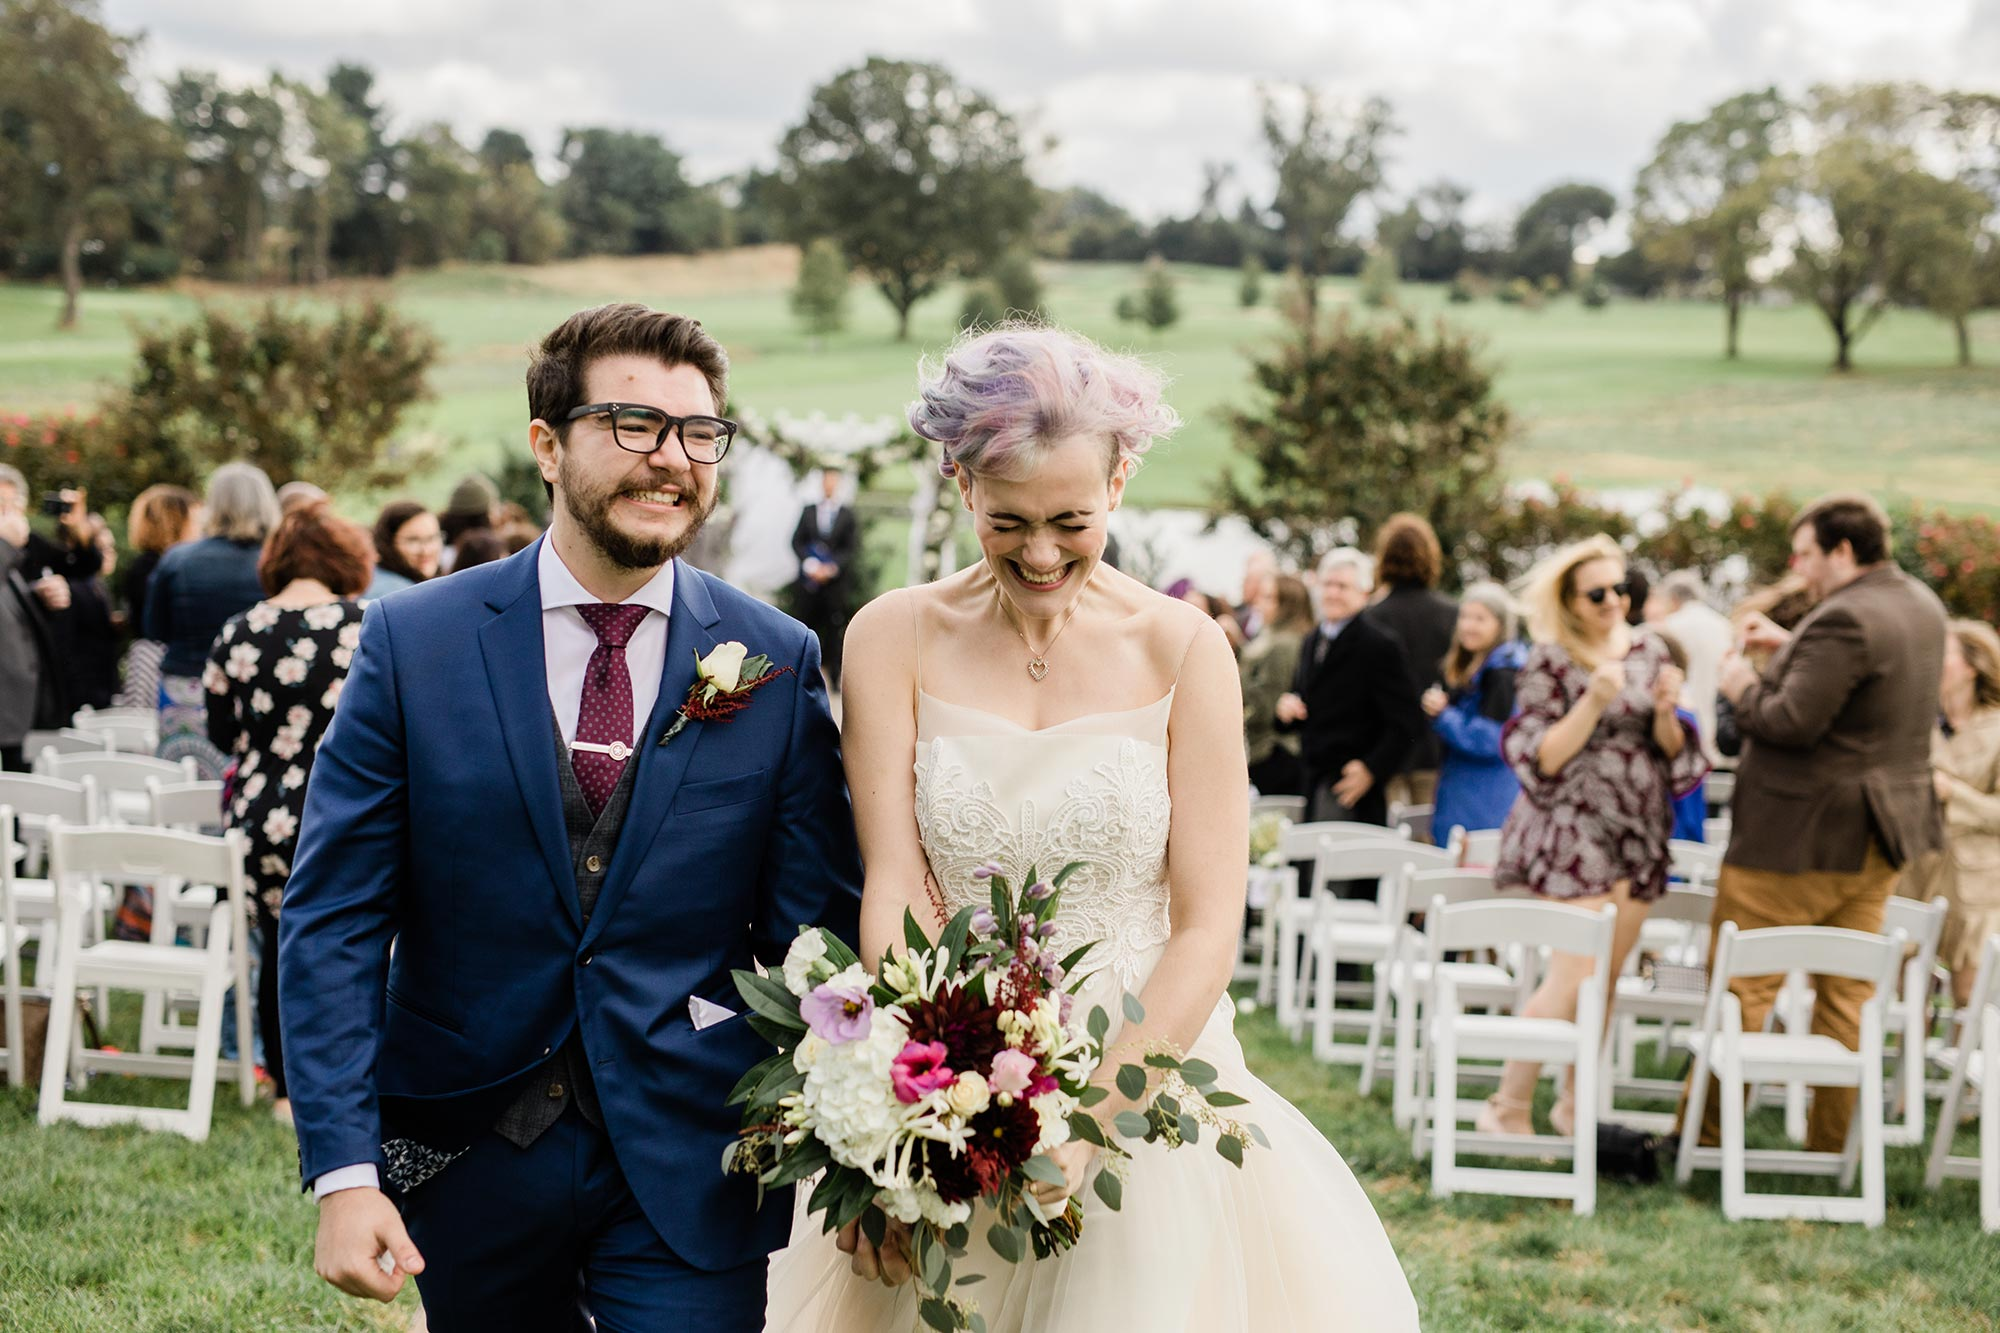 Chic Queer Wedding in West Chester Pennsylvania showing couple smiling after ceremony Judson Rappaport Photography